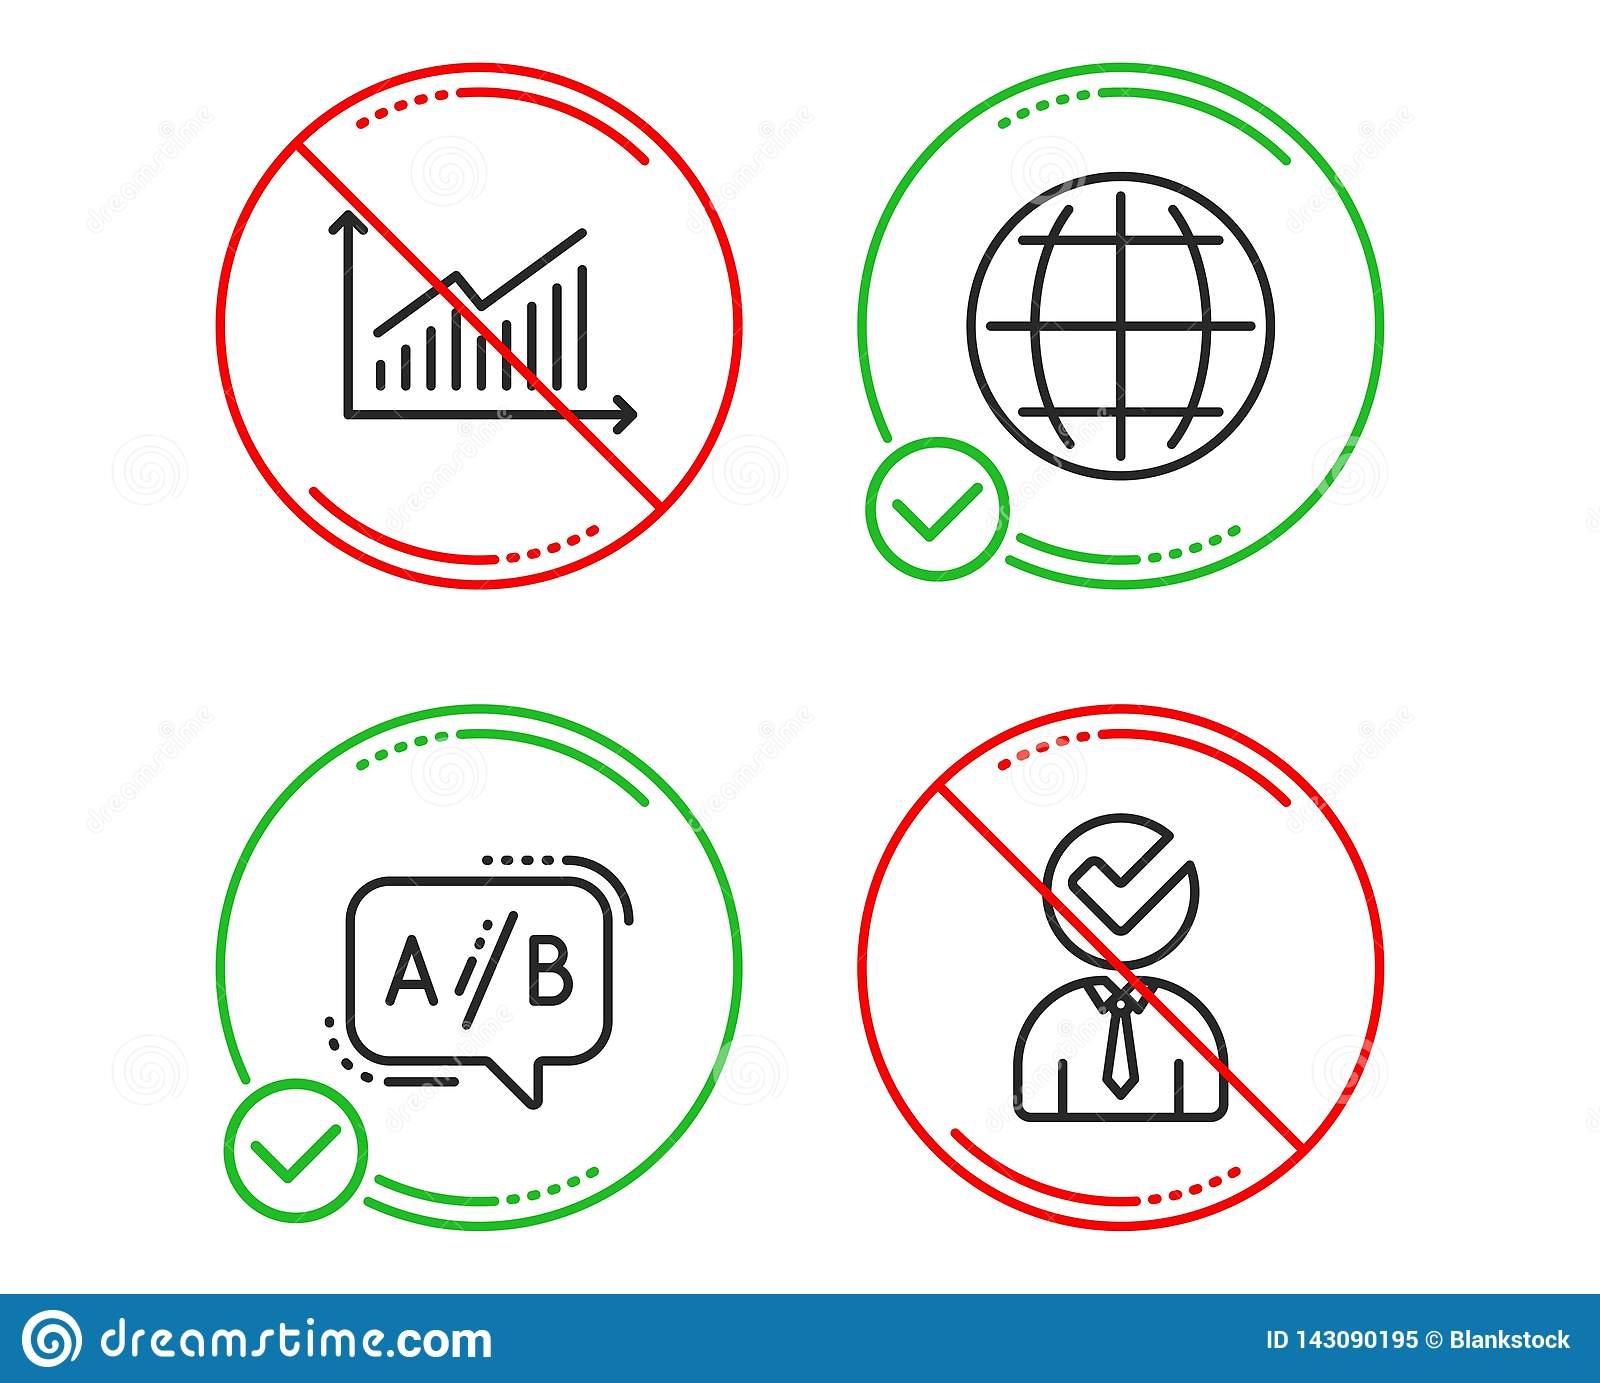 presentation diagram, test chat, internet world  businessman concept   business set  line graph do icon  prohibited ban stop